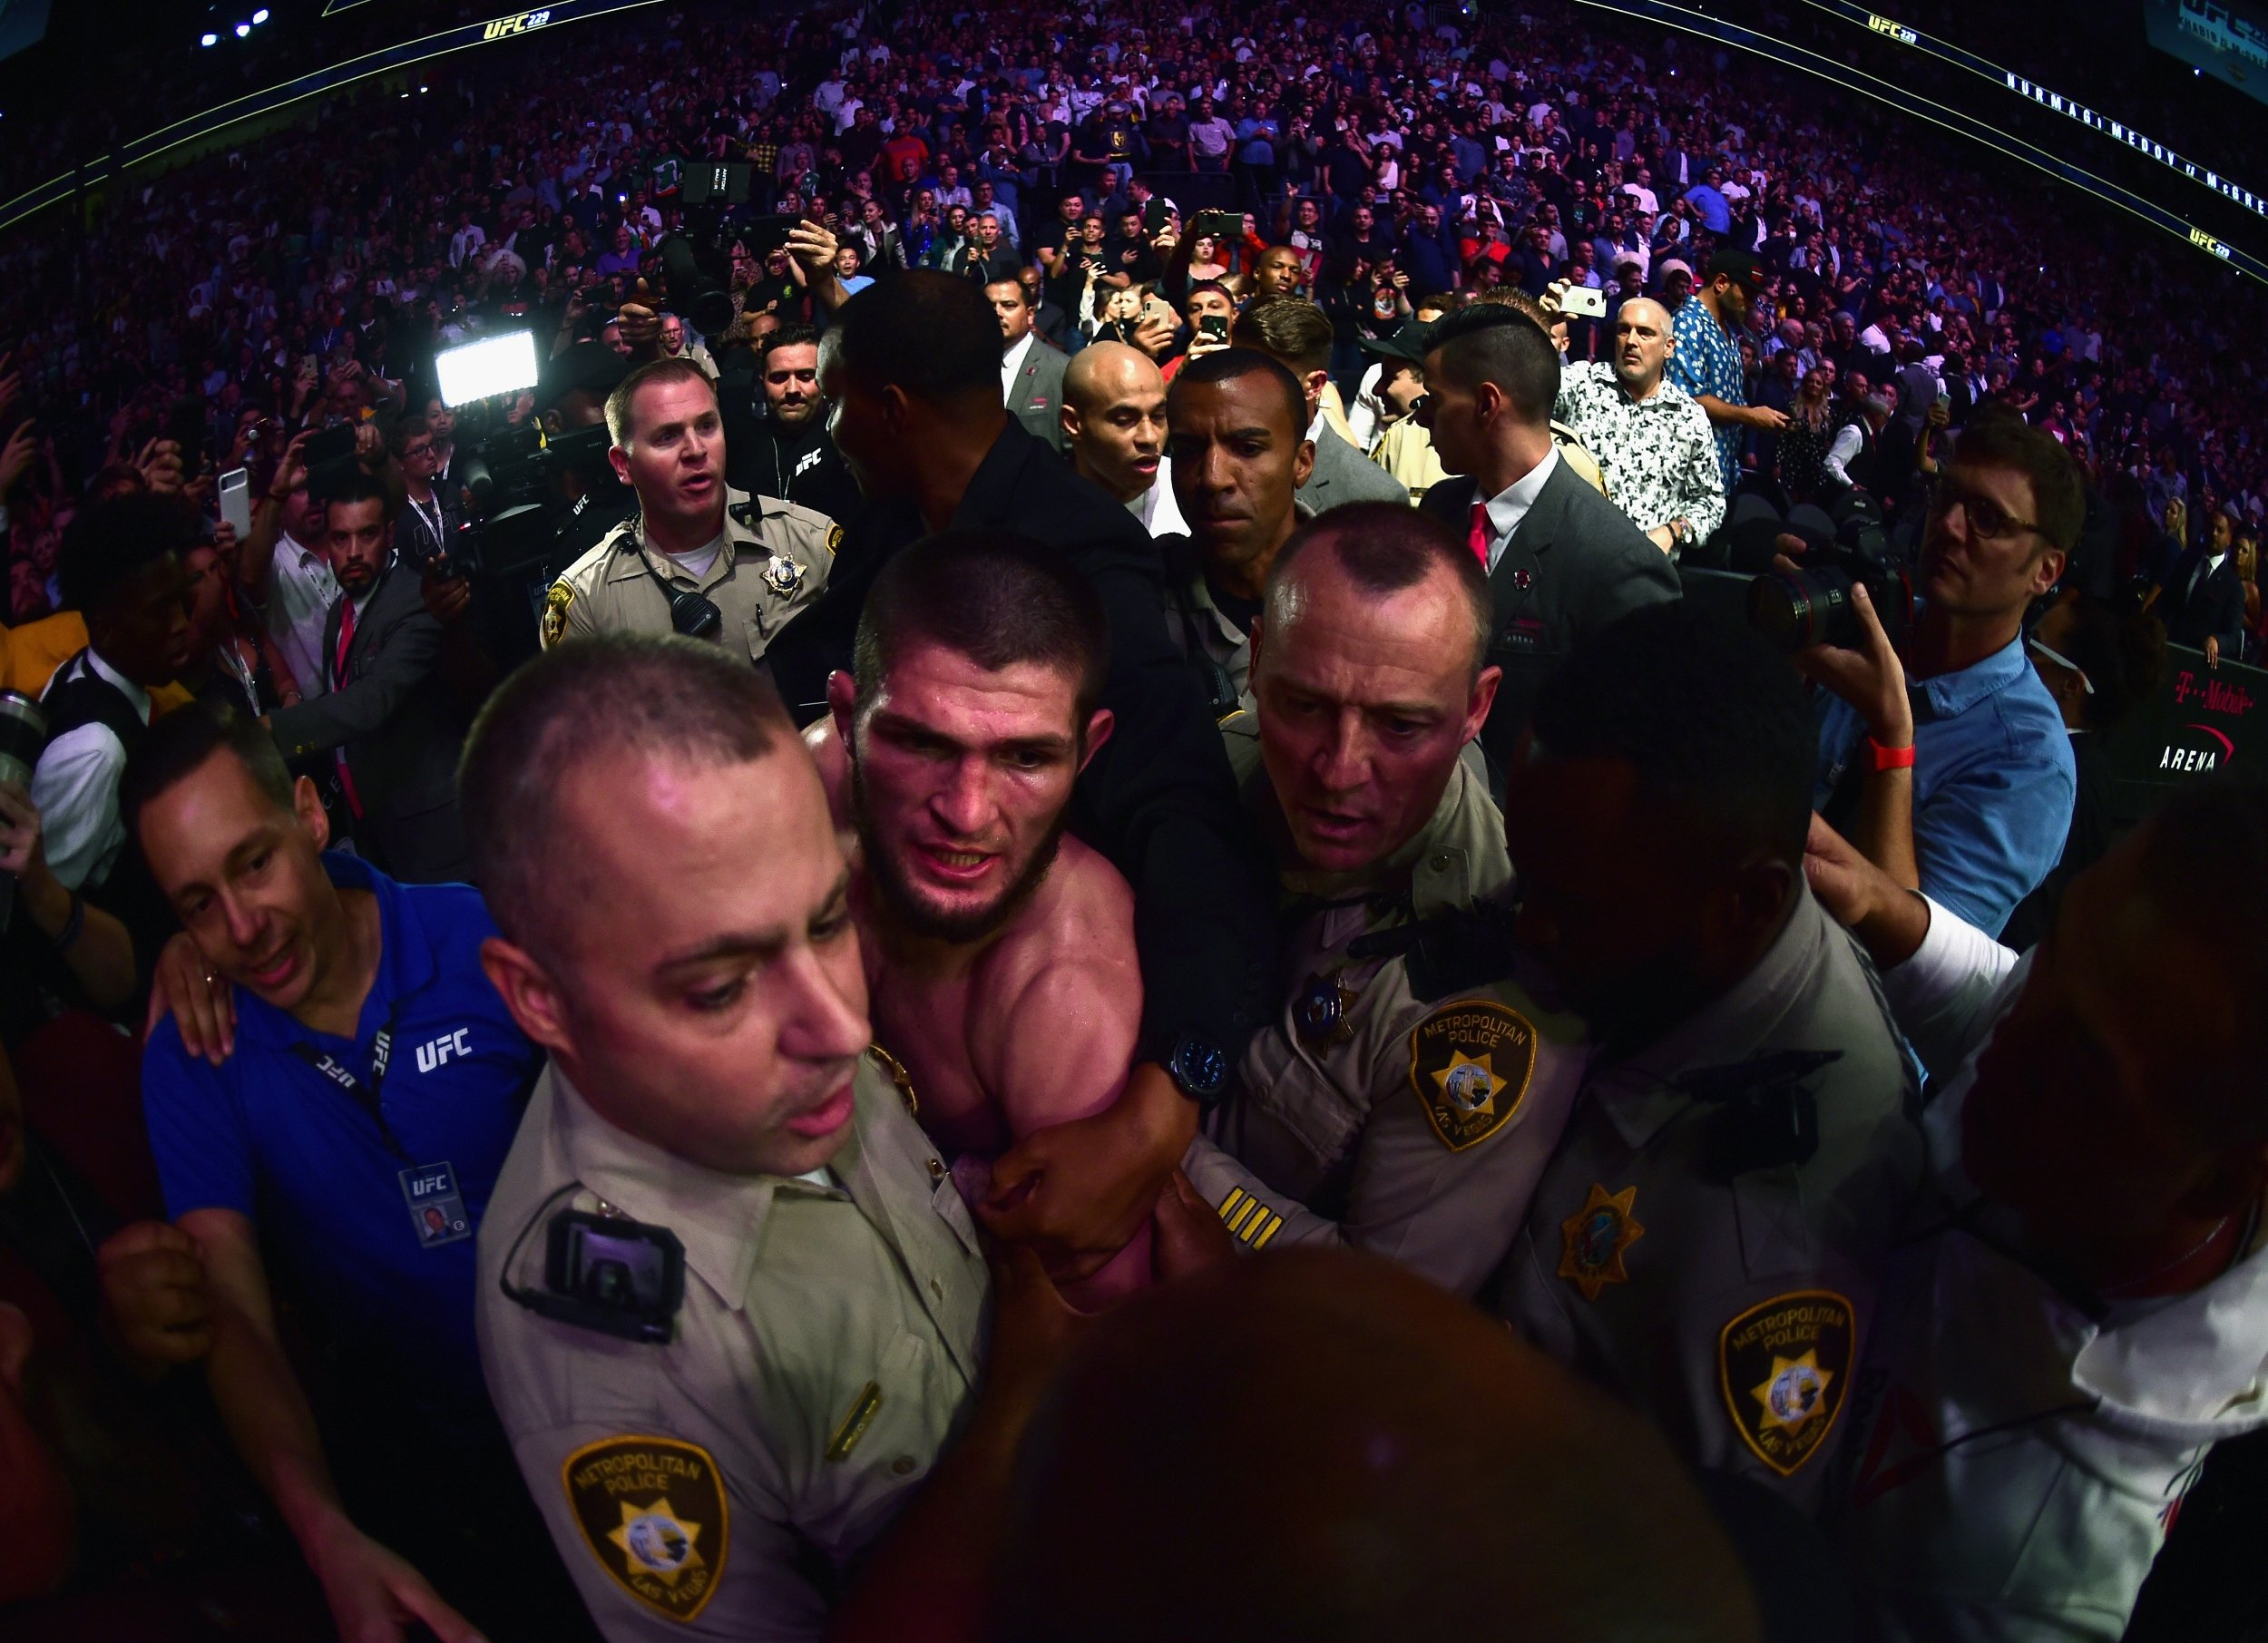 Conor McGregor and Khabib Nurmagomedov have bans extended 'indefinitely' following UFC 229 aftermath